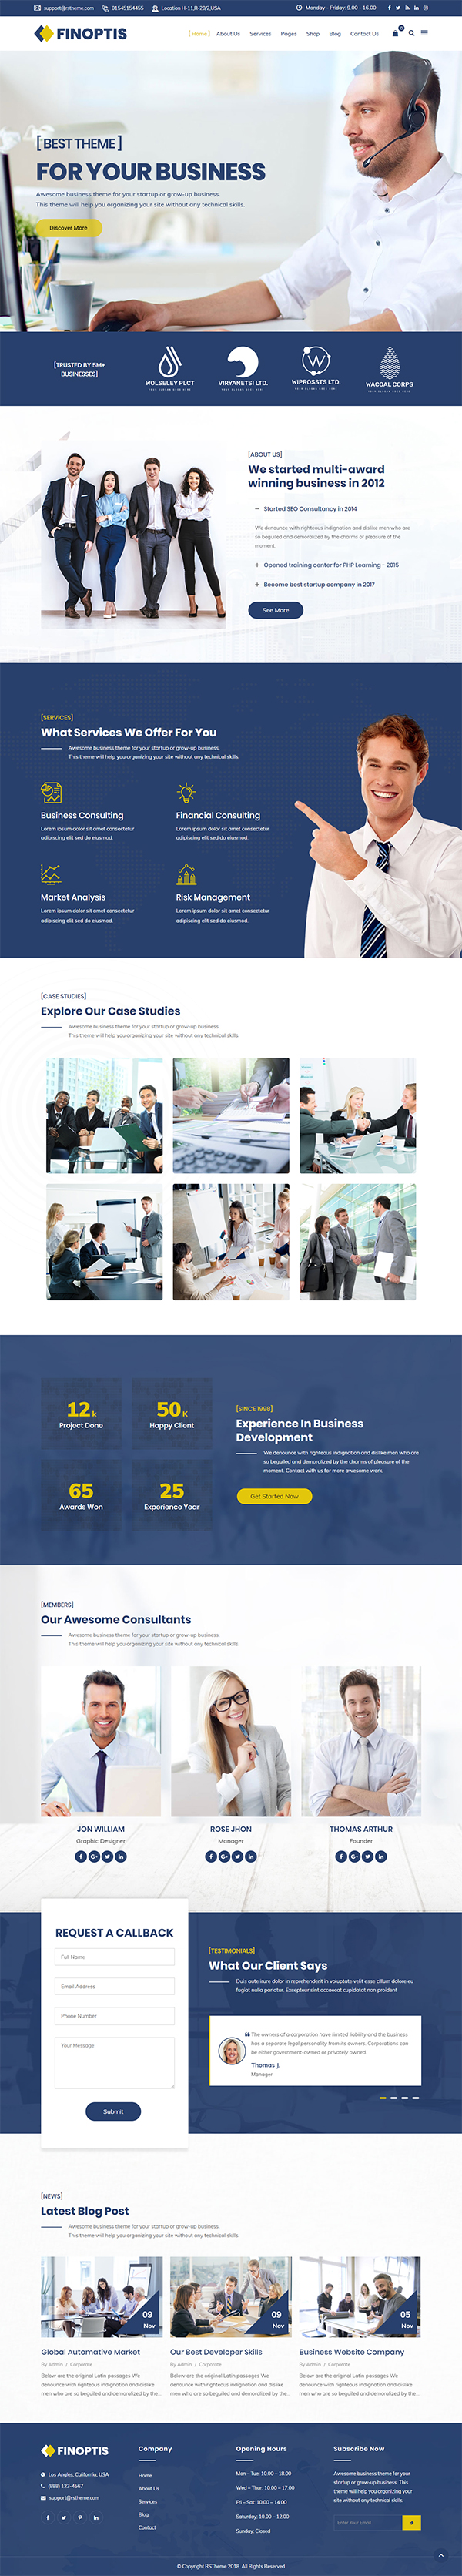 Finoptis - Multipurpose Business WordPress Theme